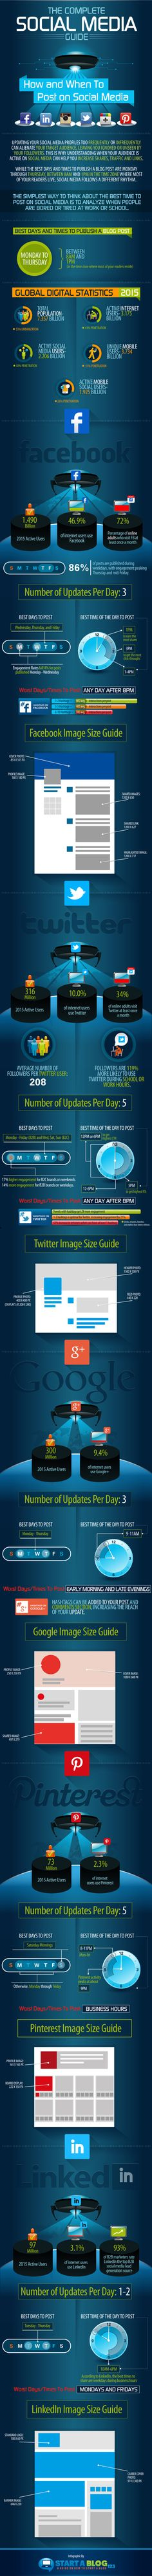 How and When To Post on Social Media #infographic